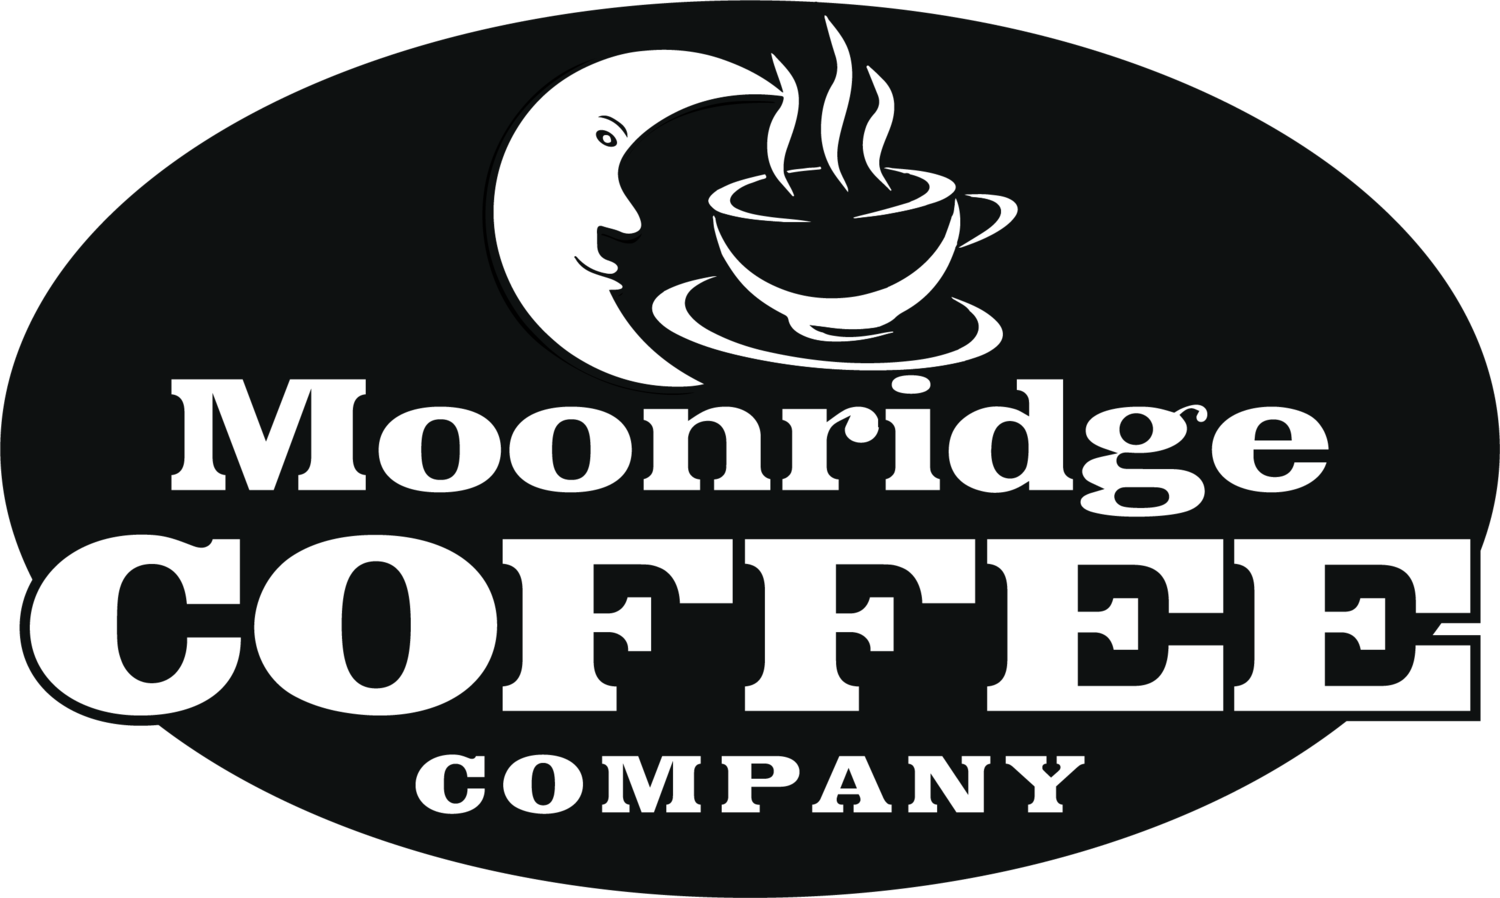 MOONRIDGE COFFEE CO.